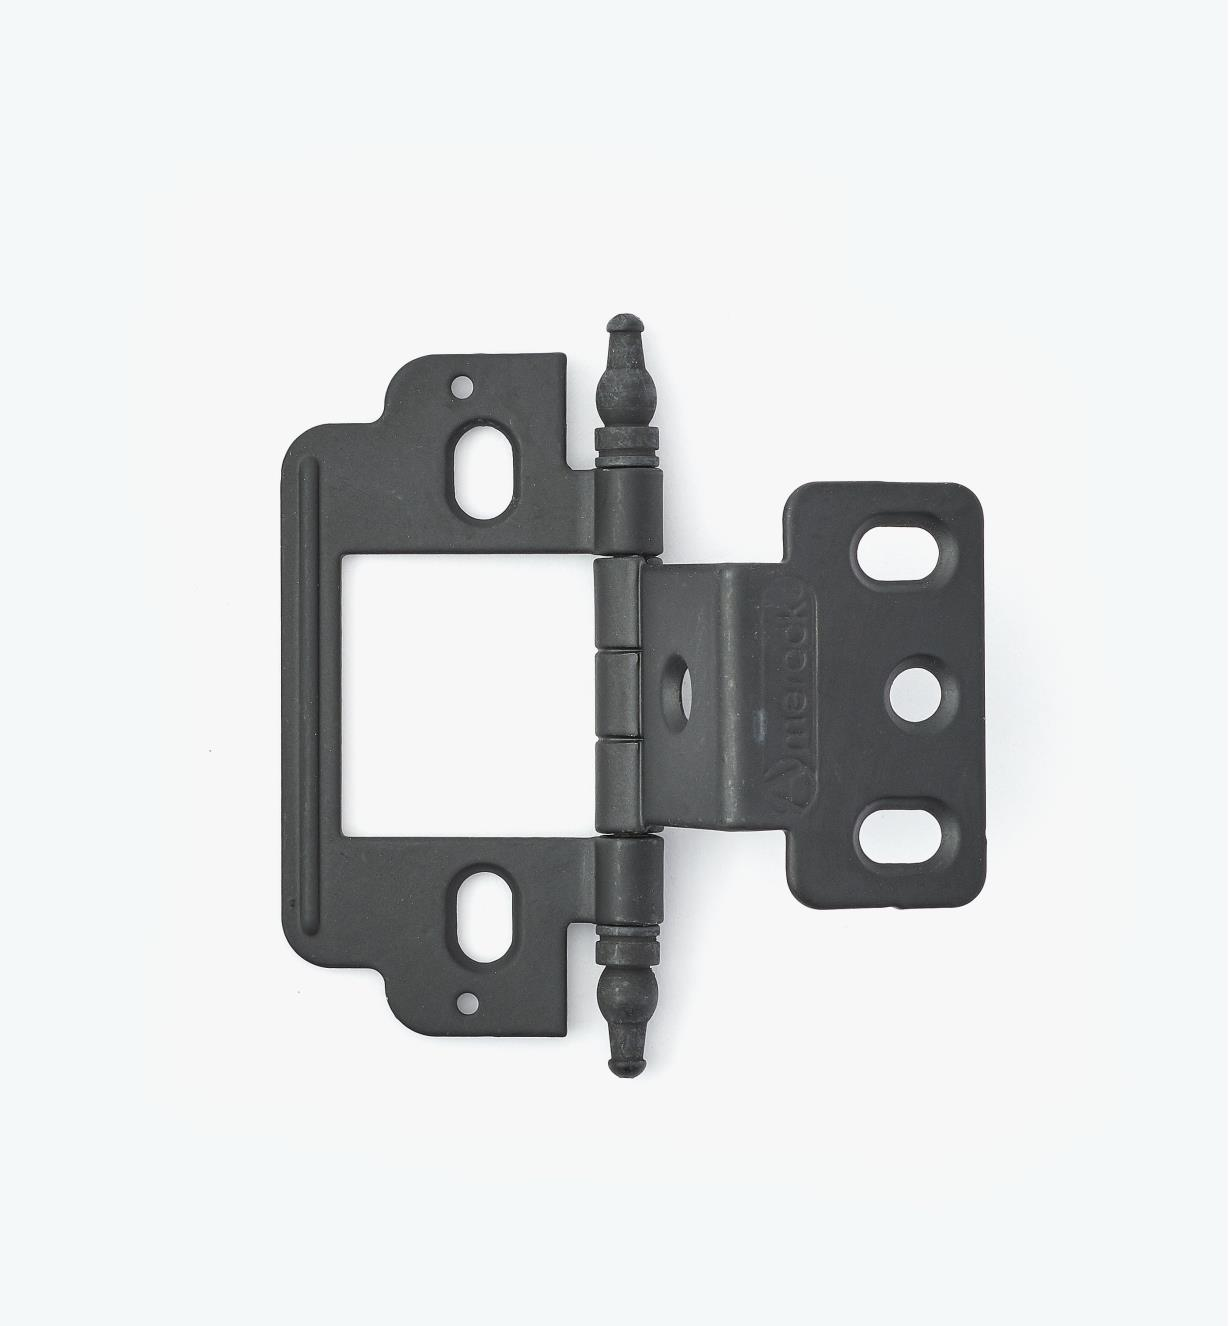 01H3160 - Partial-Wrap Hinge,Black, Minaret